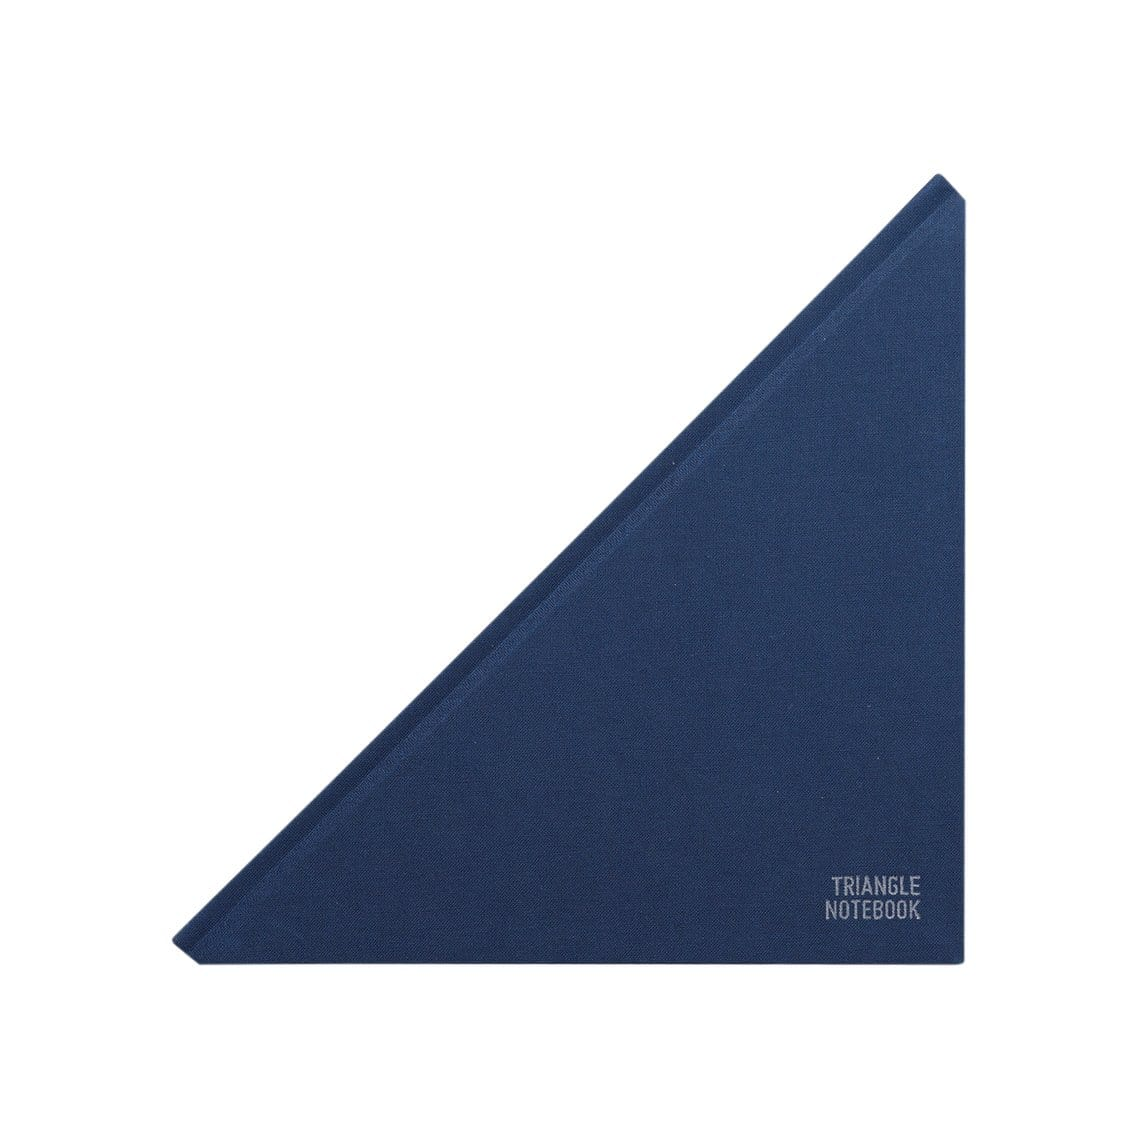 Triangle Notebooks Notebooks + Stationery Triangle Ruled Navy Blue Notebook